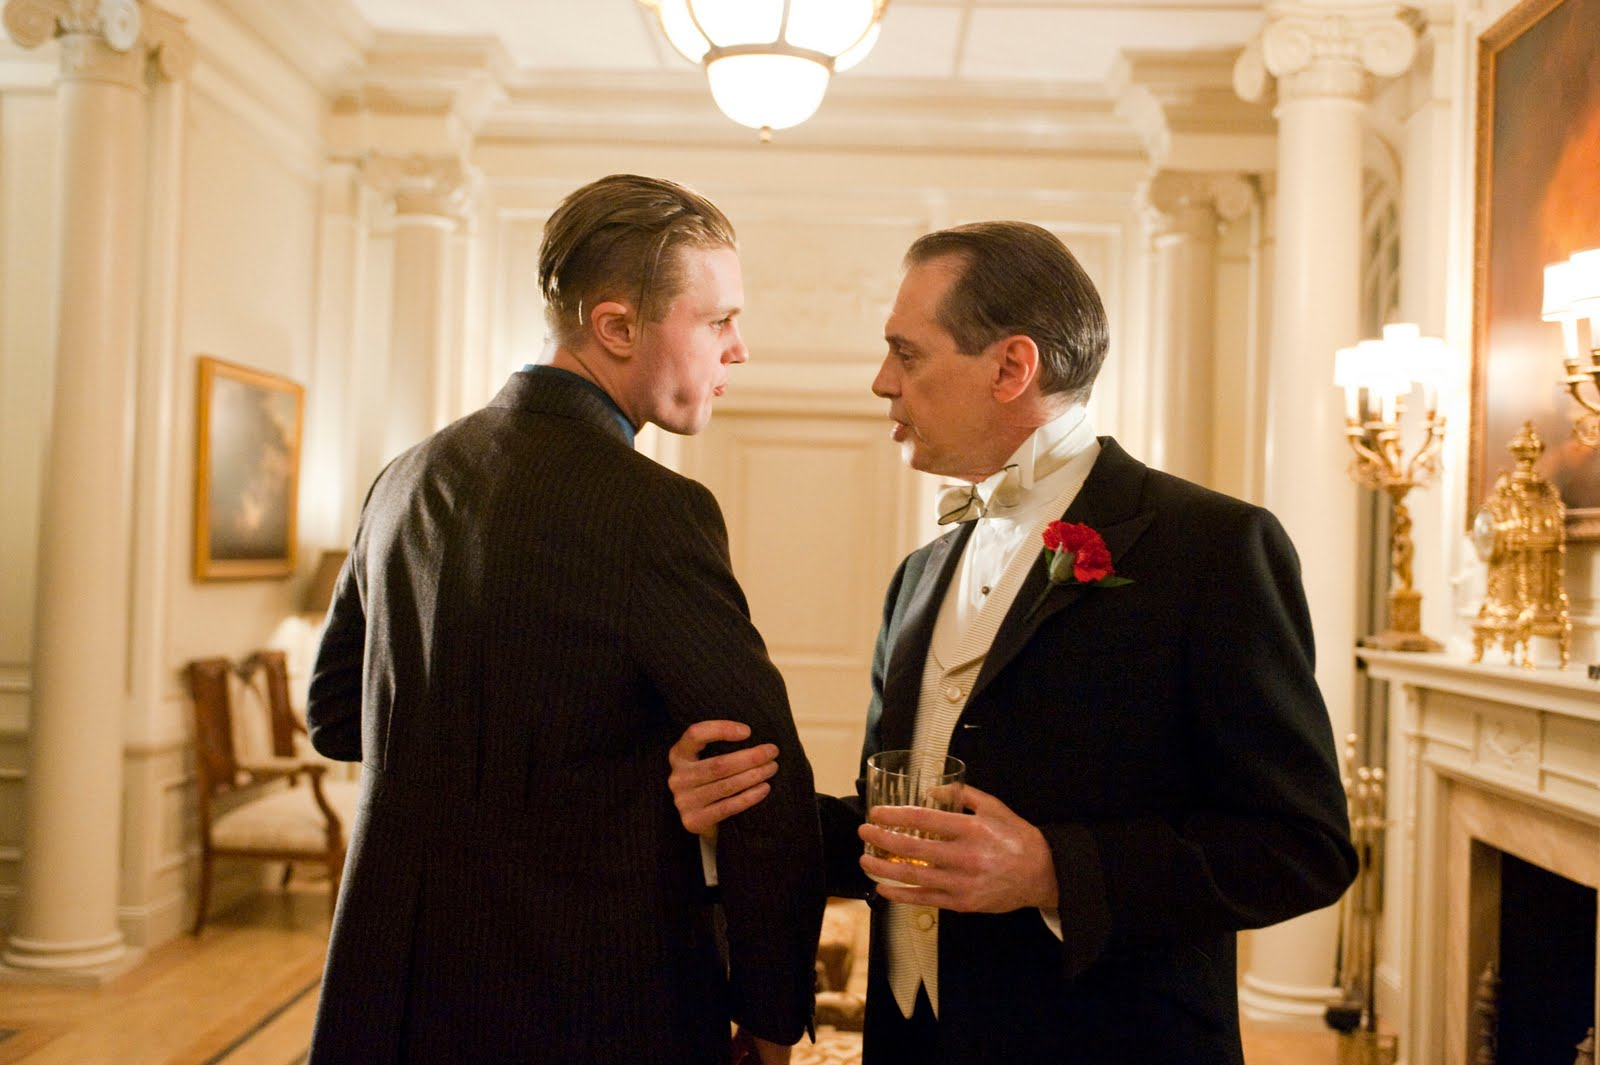 http://3.bp.blogspot.com/_QQqOtW0-rAs/TR1ibgpRGwI/AAAAAAAABcA/NjQknspmuIw/s1600/boardwalk-empire-recap-episode-12-finale-a-return-to-normalcy-jimmy-nucky.jpg